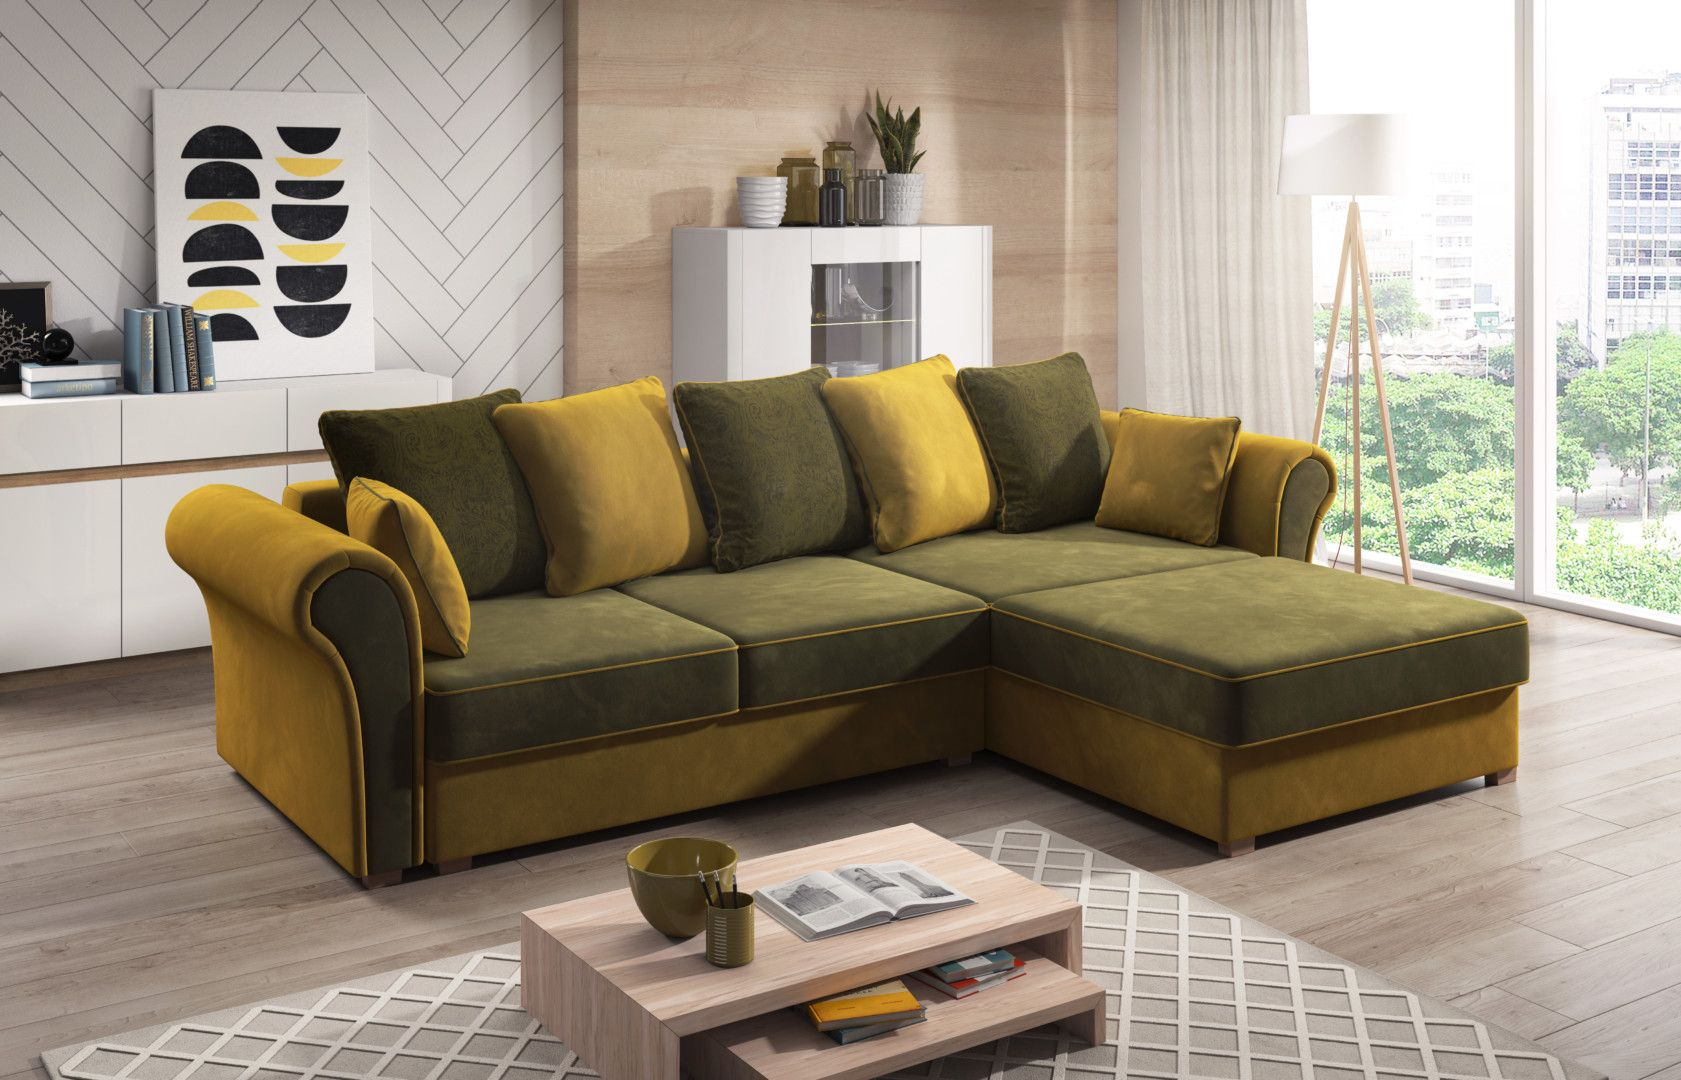 easy to clean sofa material foam sleeper mattress family night needs a comfortable that s this is both the looks great while repelling any spills familynight